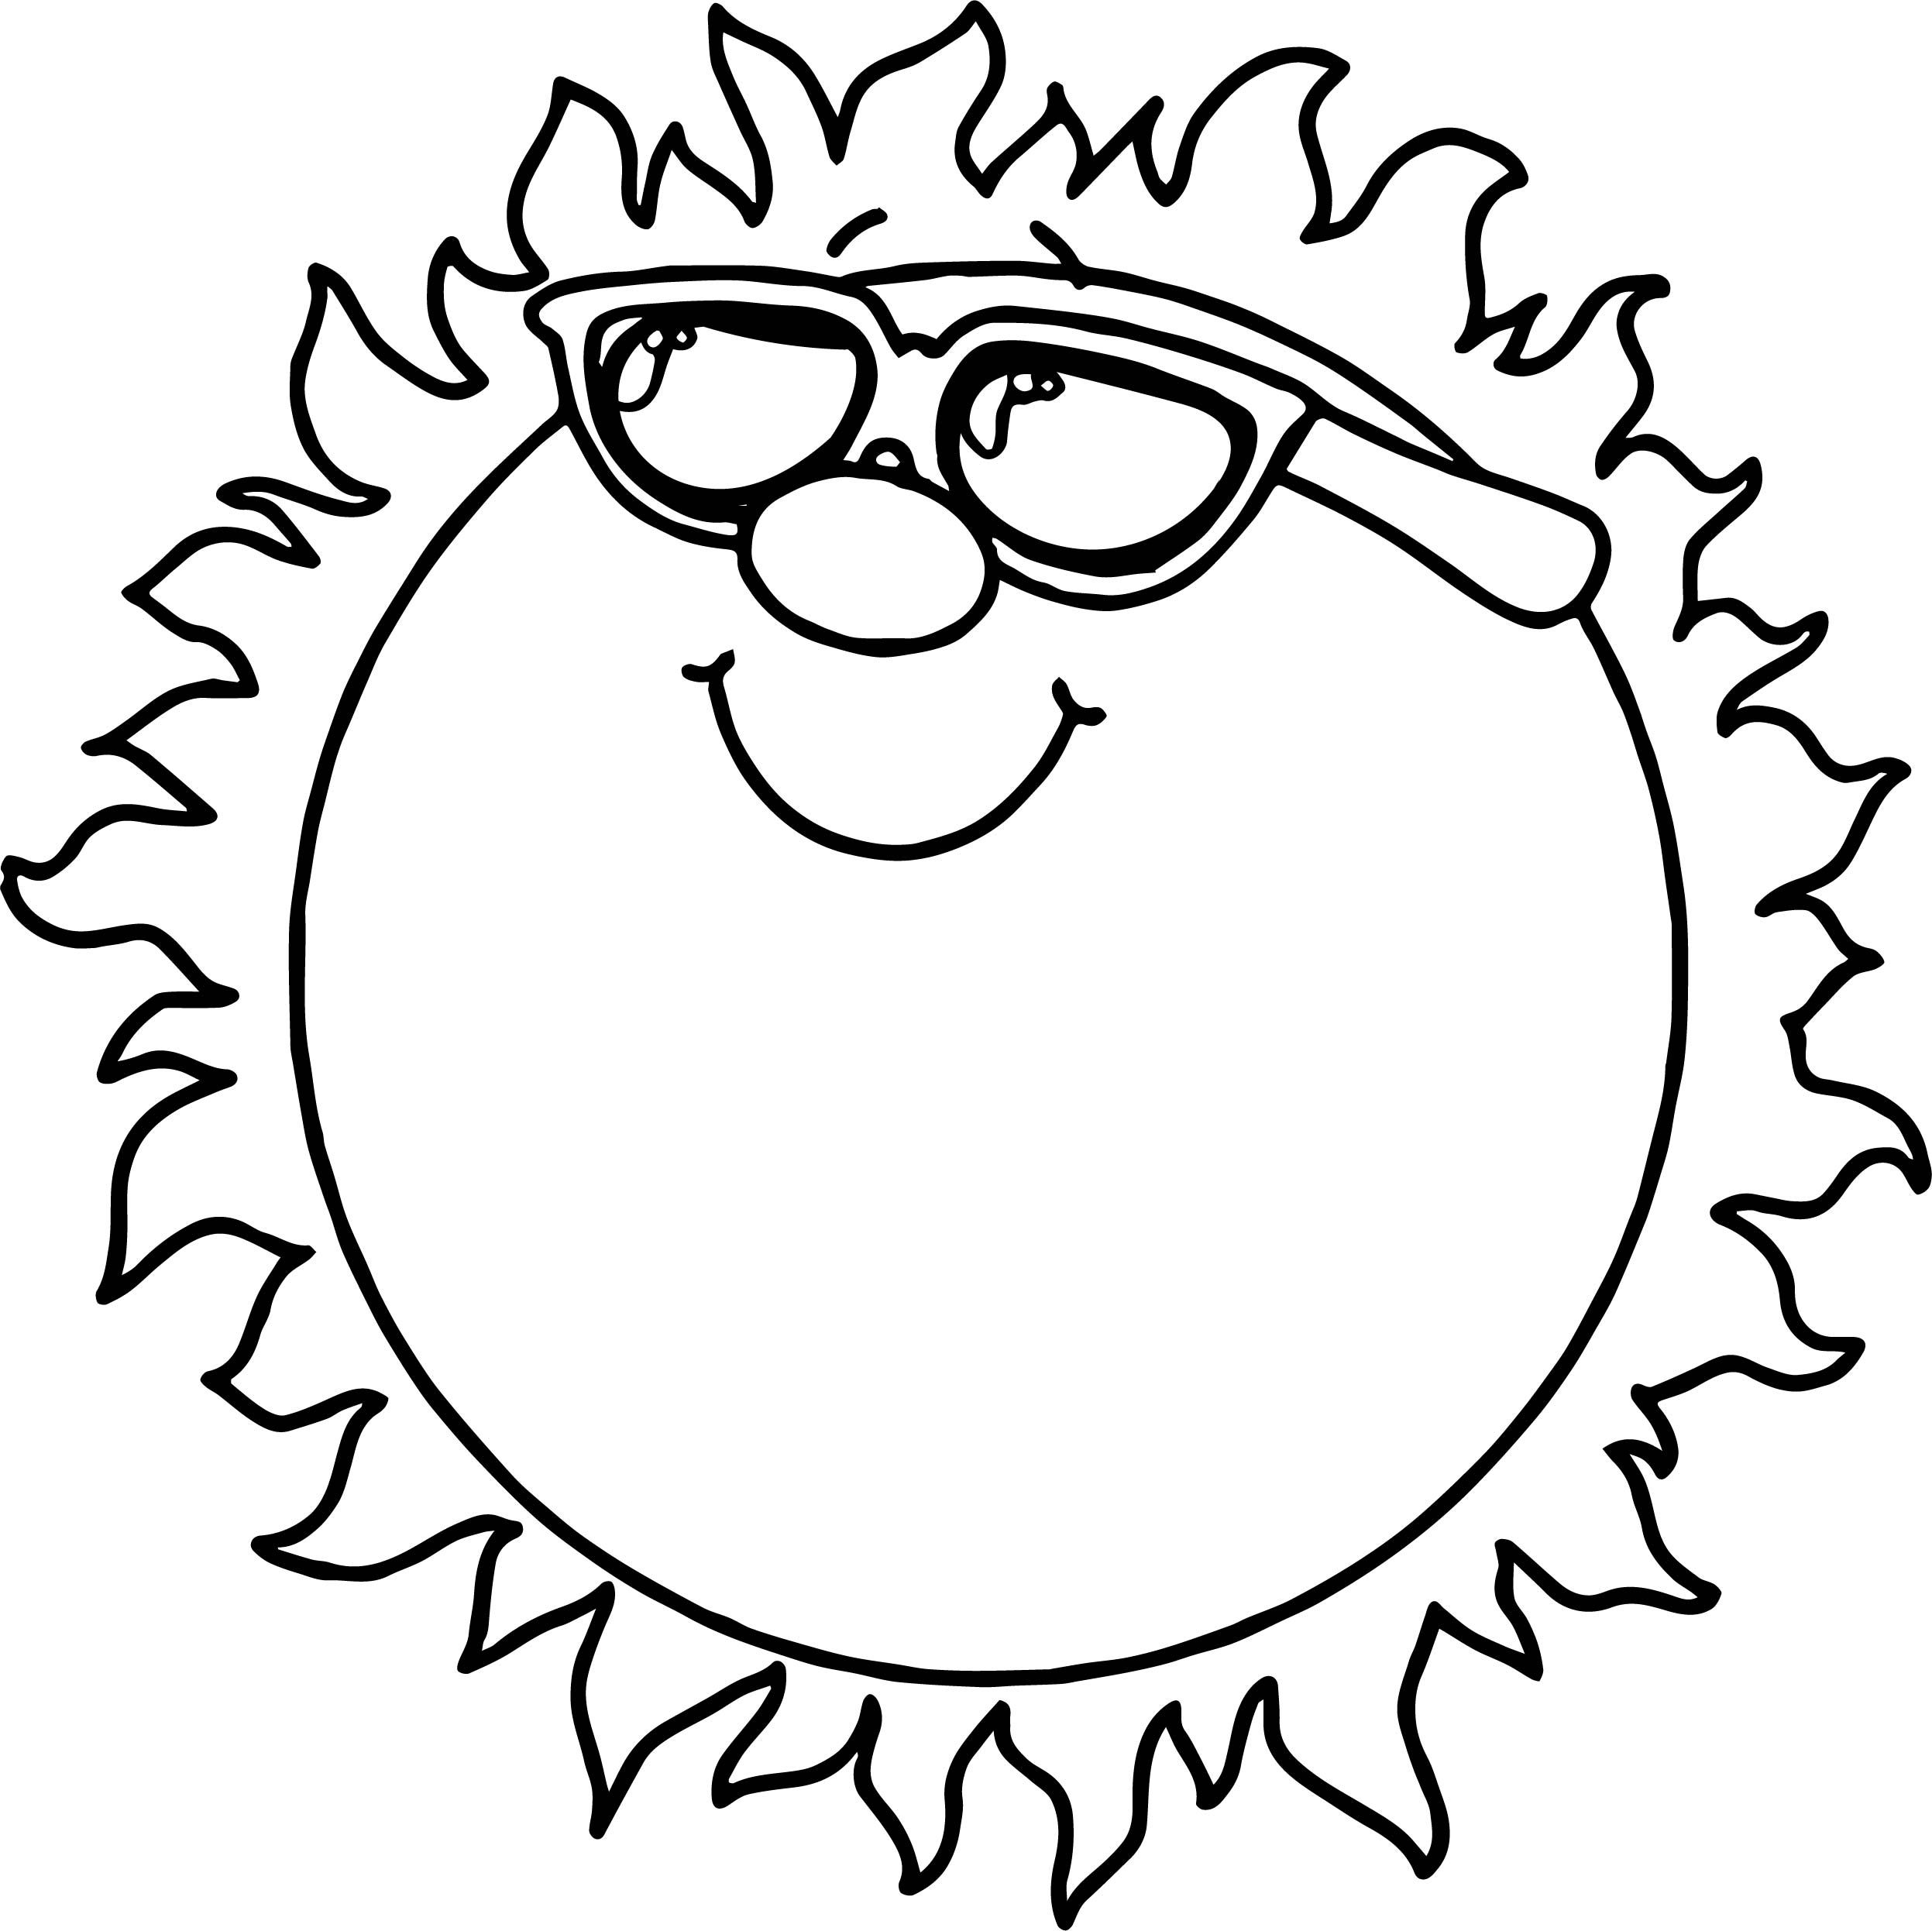 Cool Summer Sun Coloring Page Sun Coloring Pages Fall Coloring Pages Planet Coloring Pages